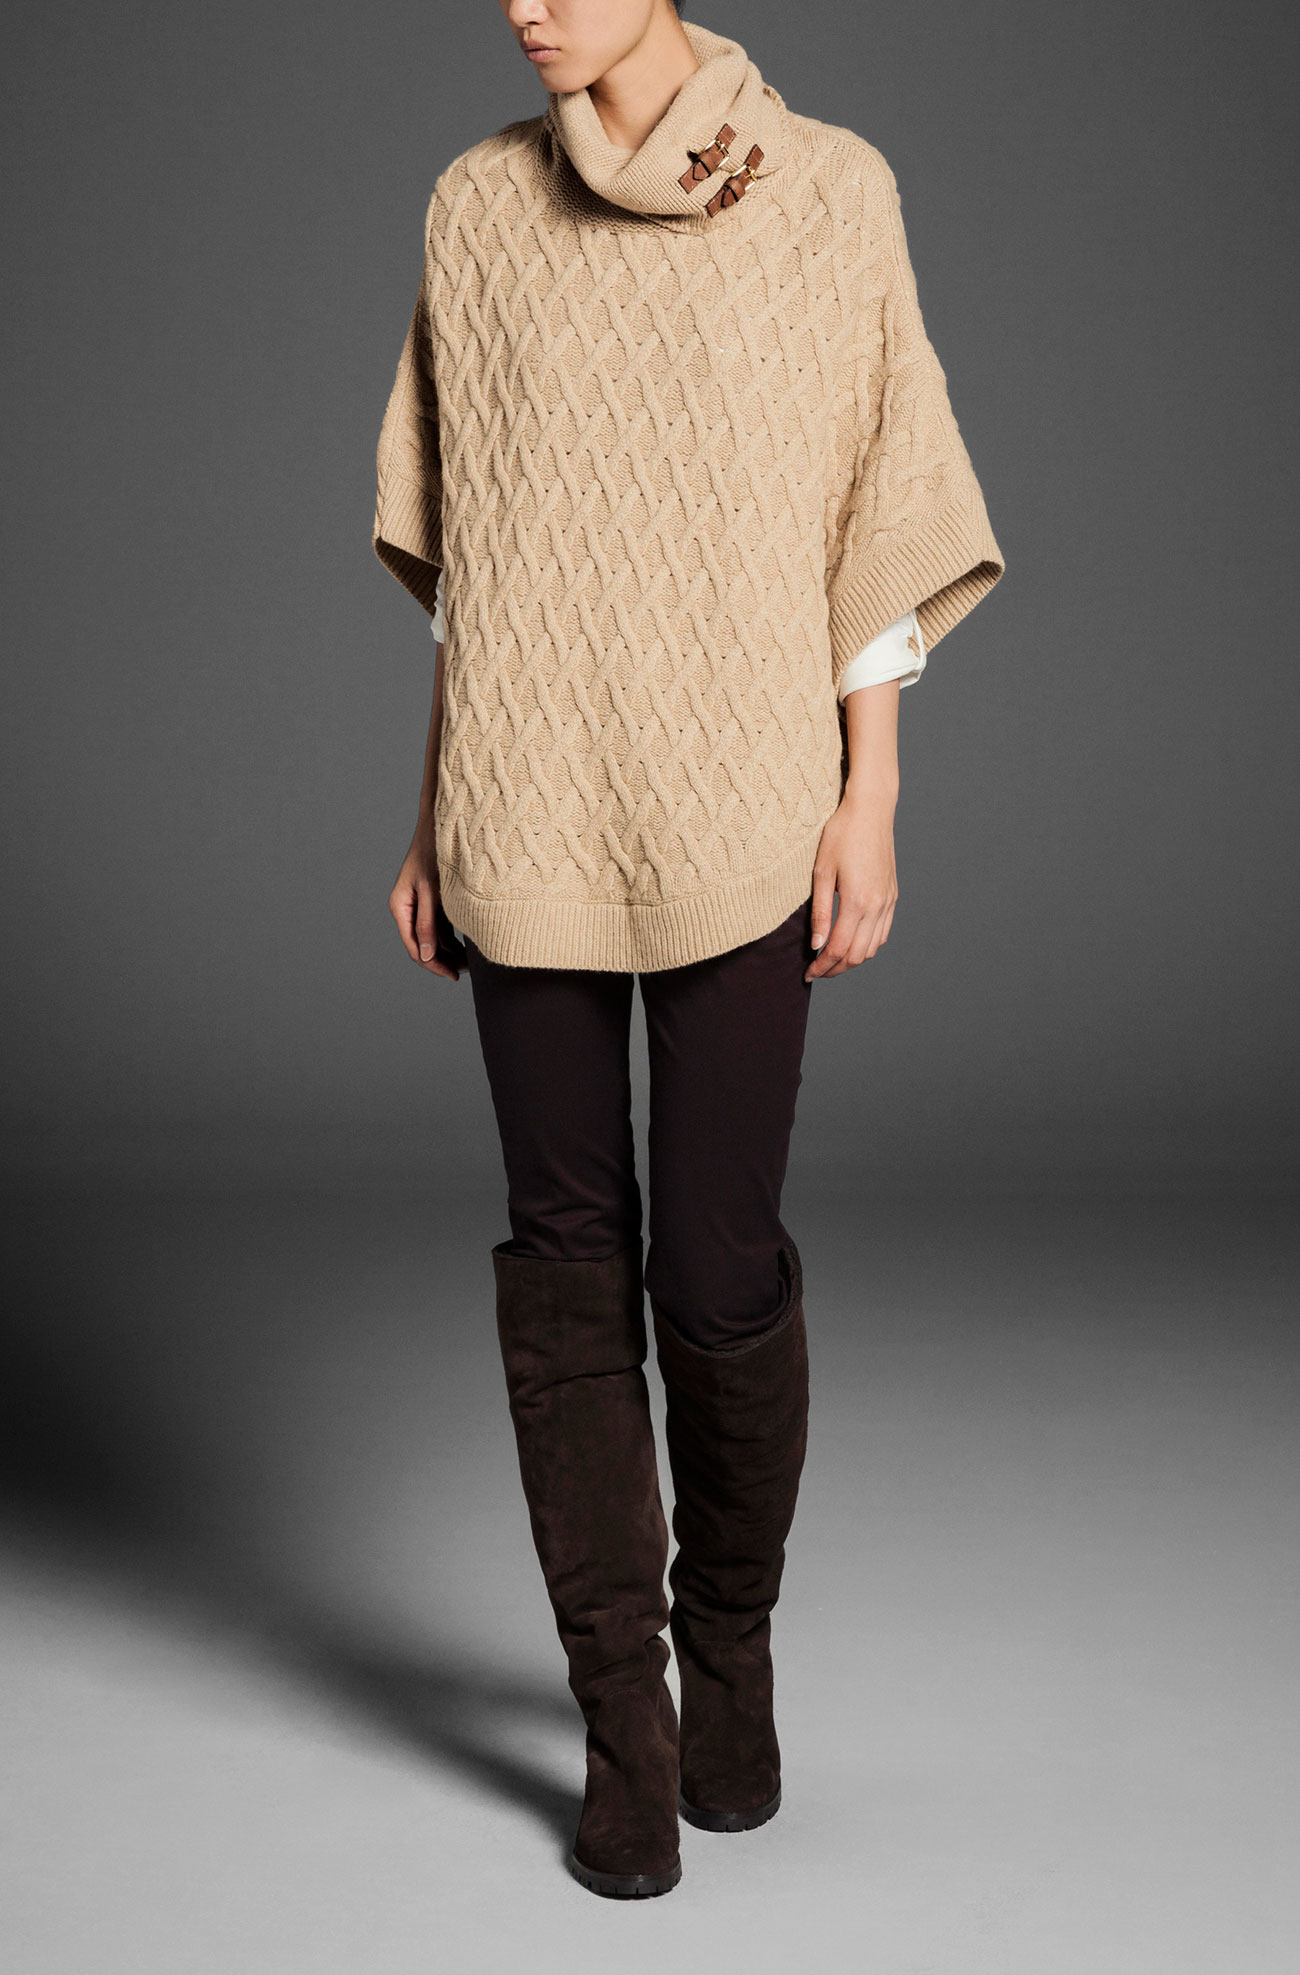 http://static.massimodutti.net/3/photos/2013/I/0/1/p/5658/611/704/5658611704_1_1_1.jpg?timestamp=1378294541757